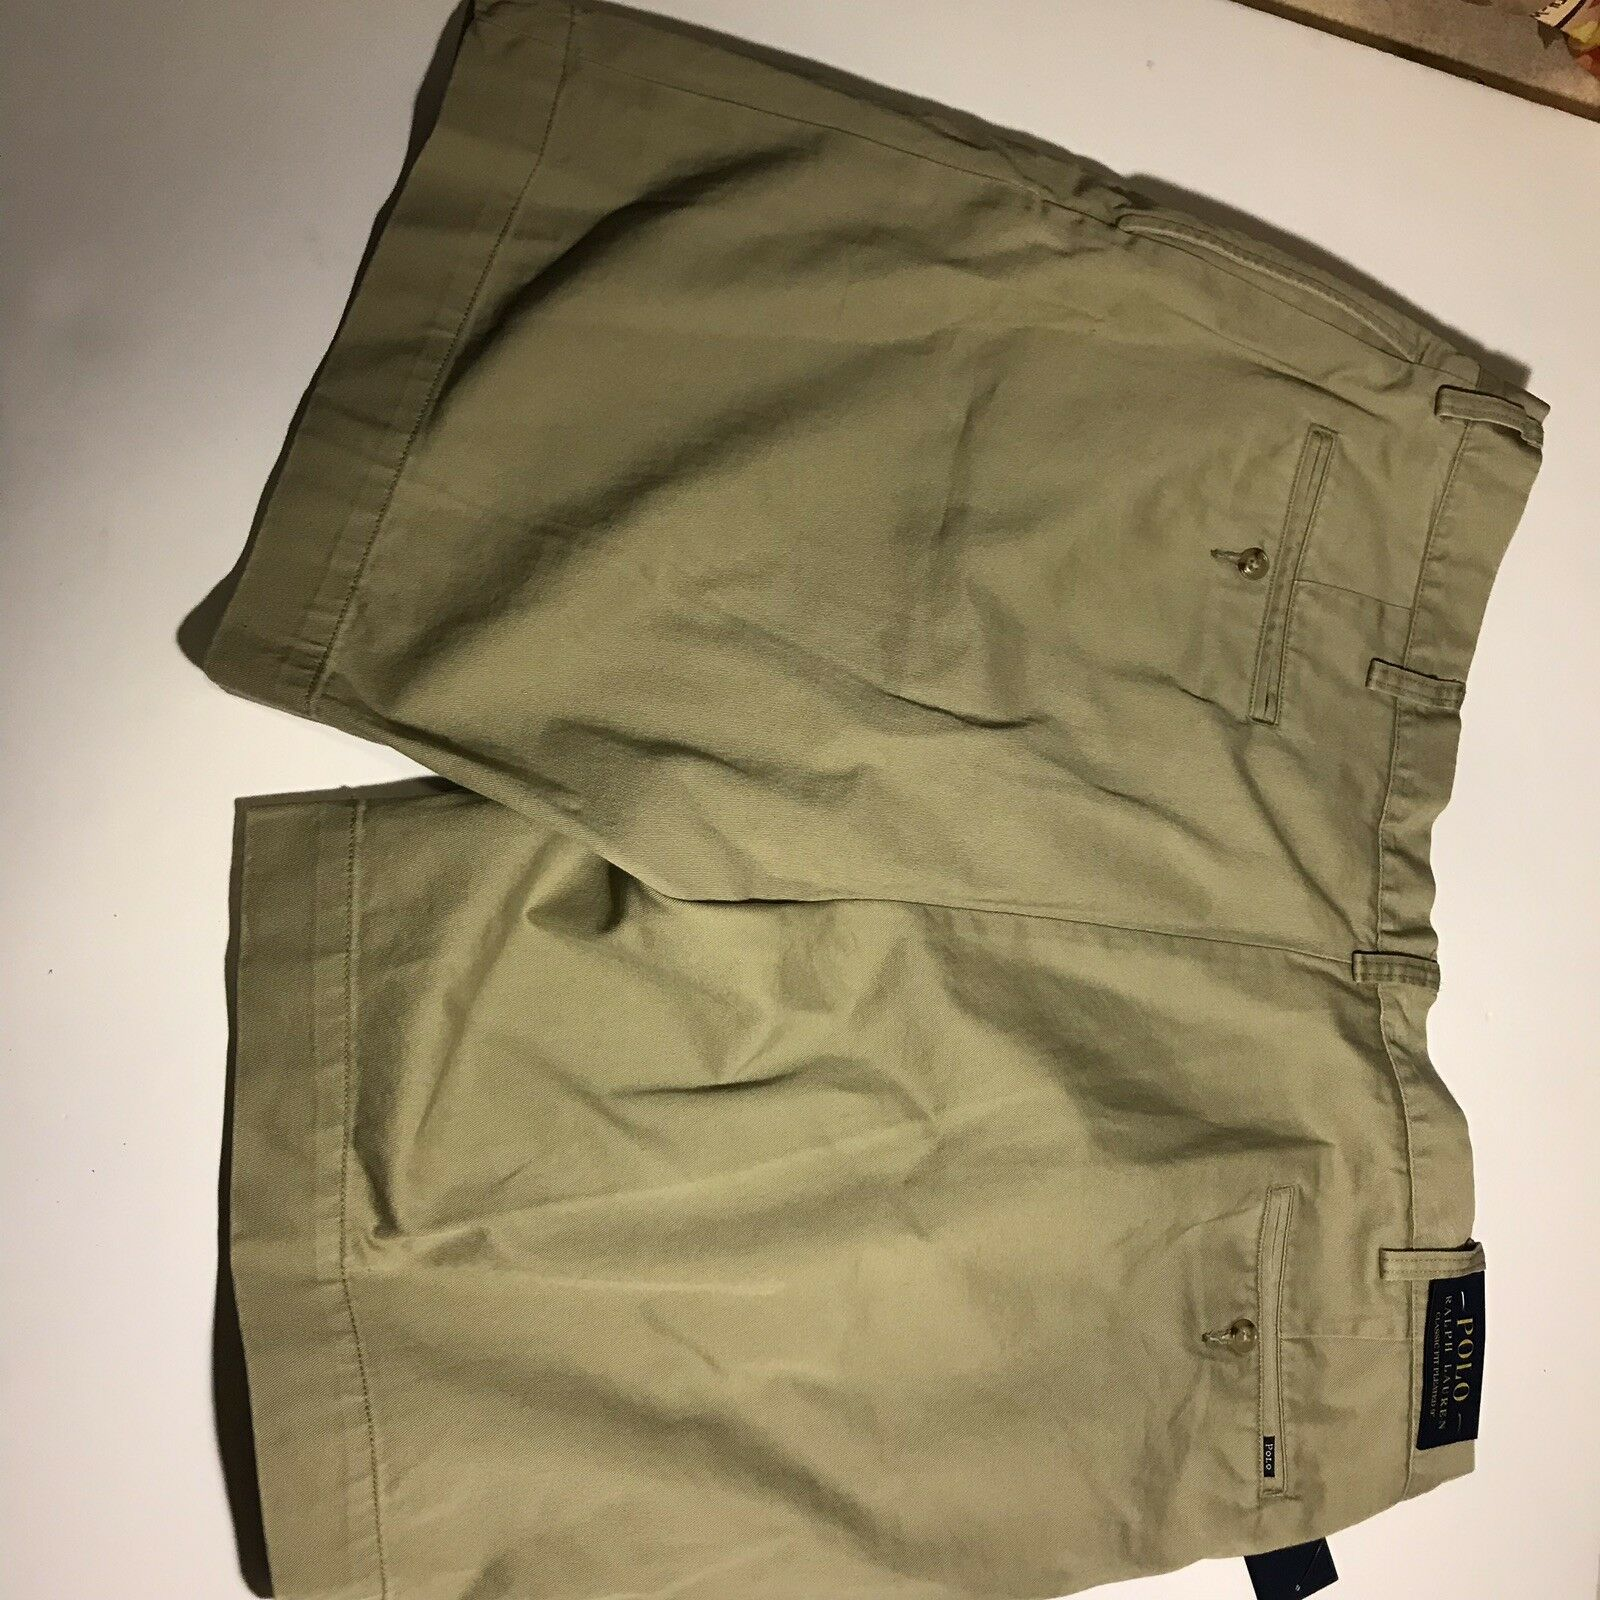 Polo Ralph Lauren Khaki Shorts Size 40 Brown Tan Beige New with Tags